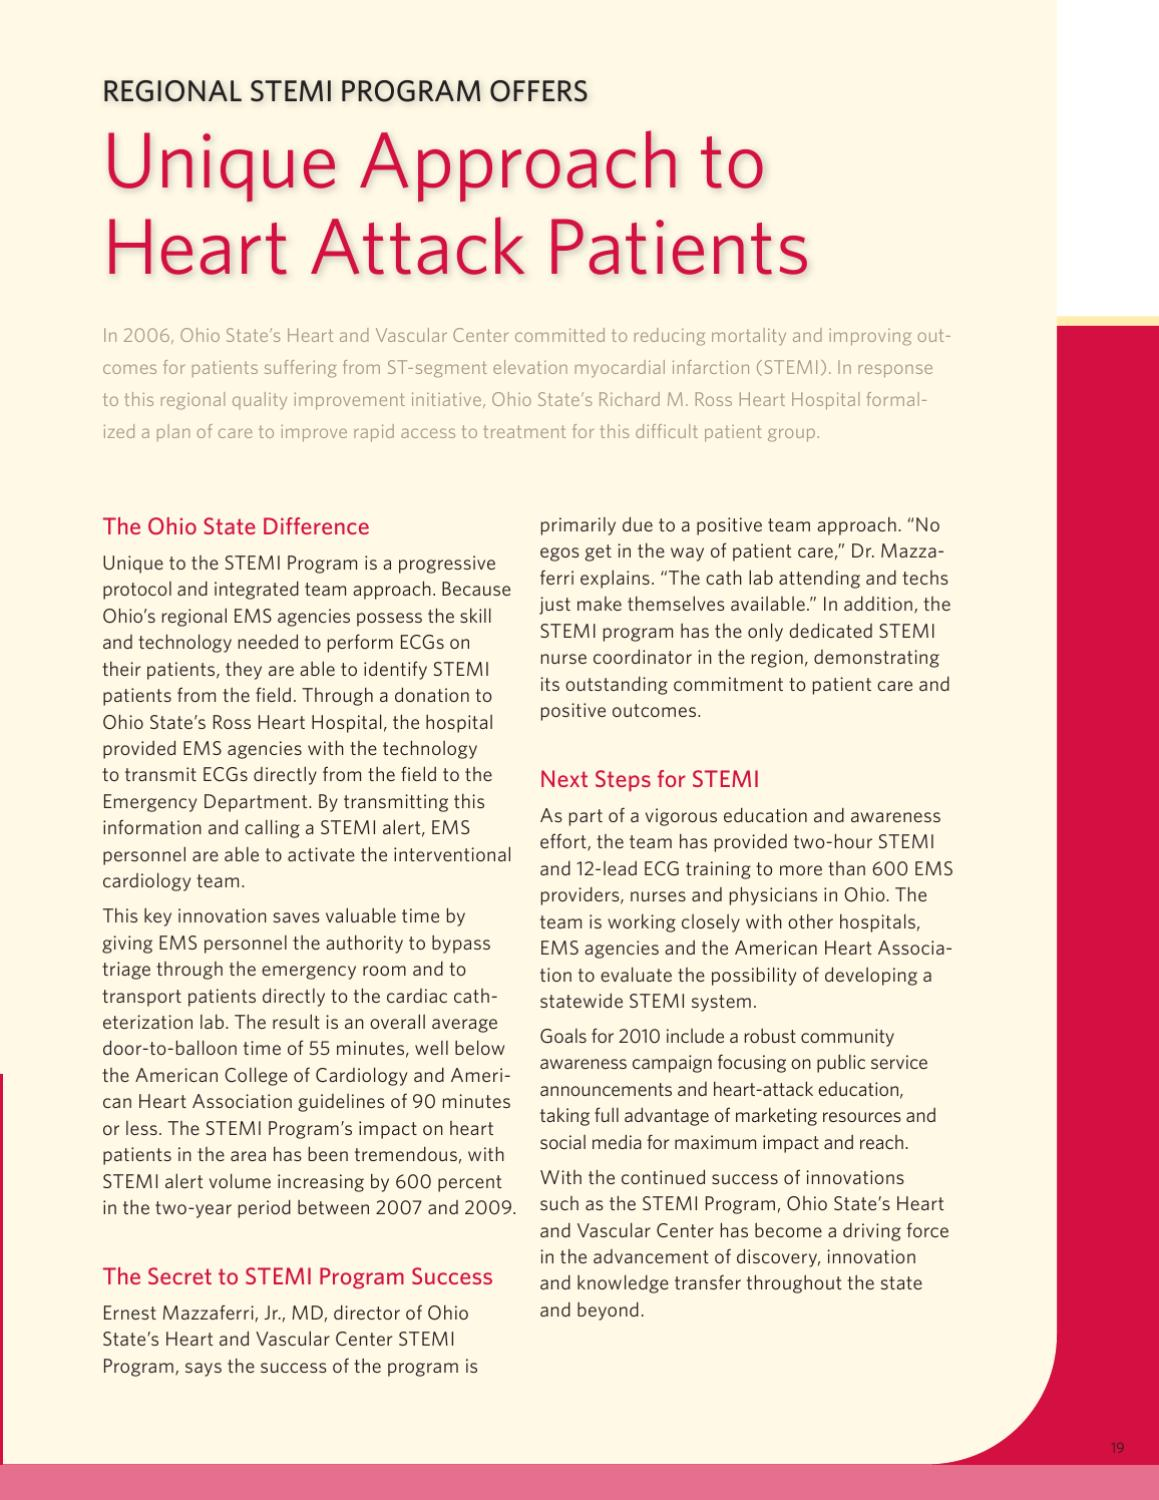 Ohio State University Heart and Vascular Center: Advances in